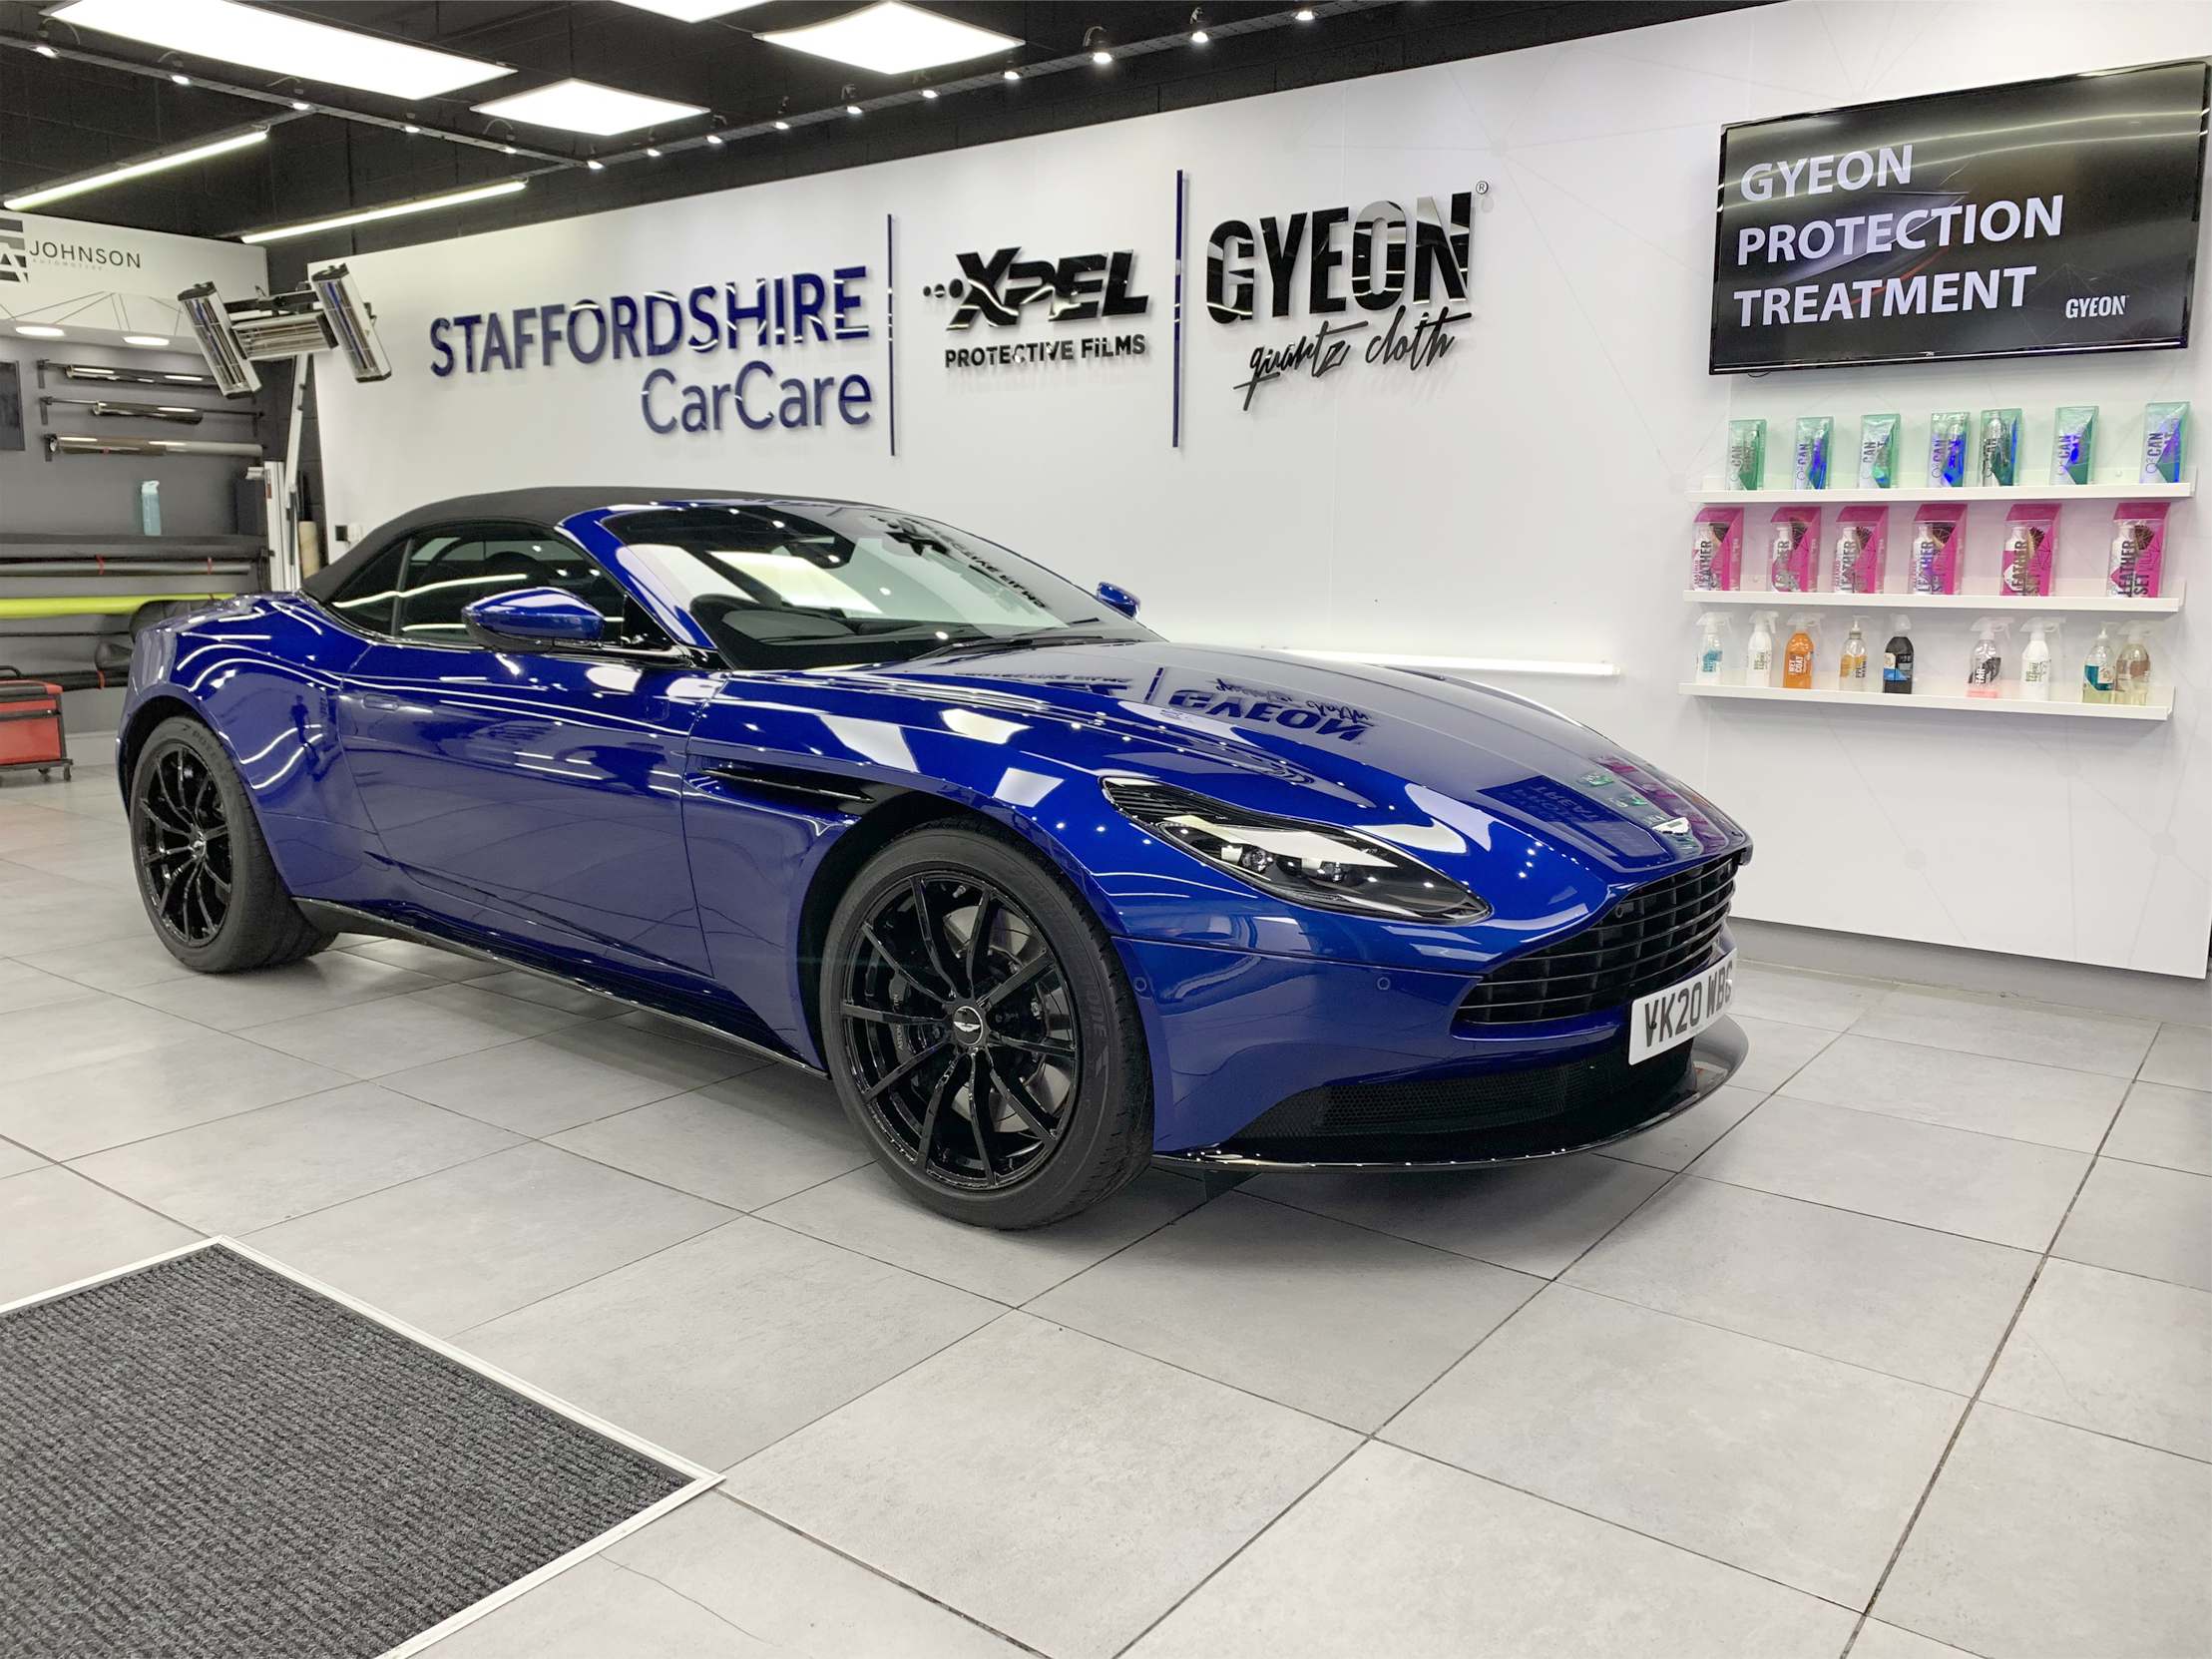 GYEON Ceramic Coating- aston martin db11